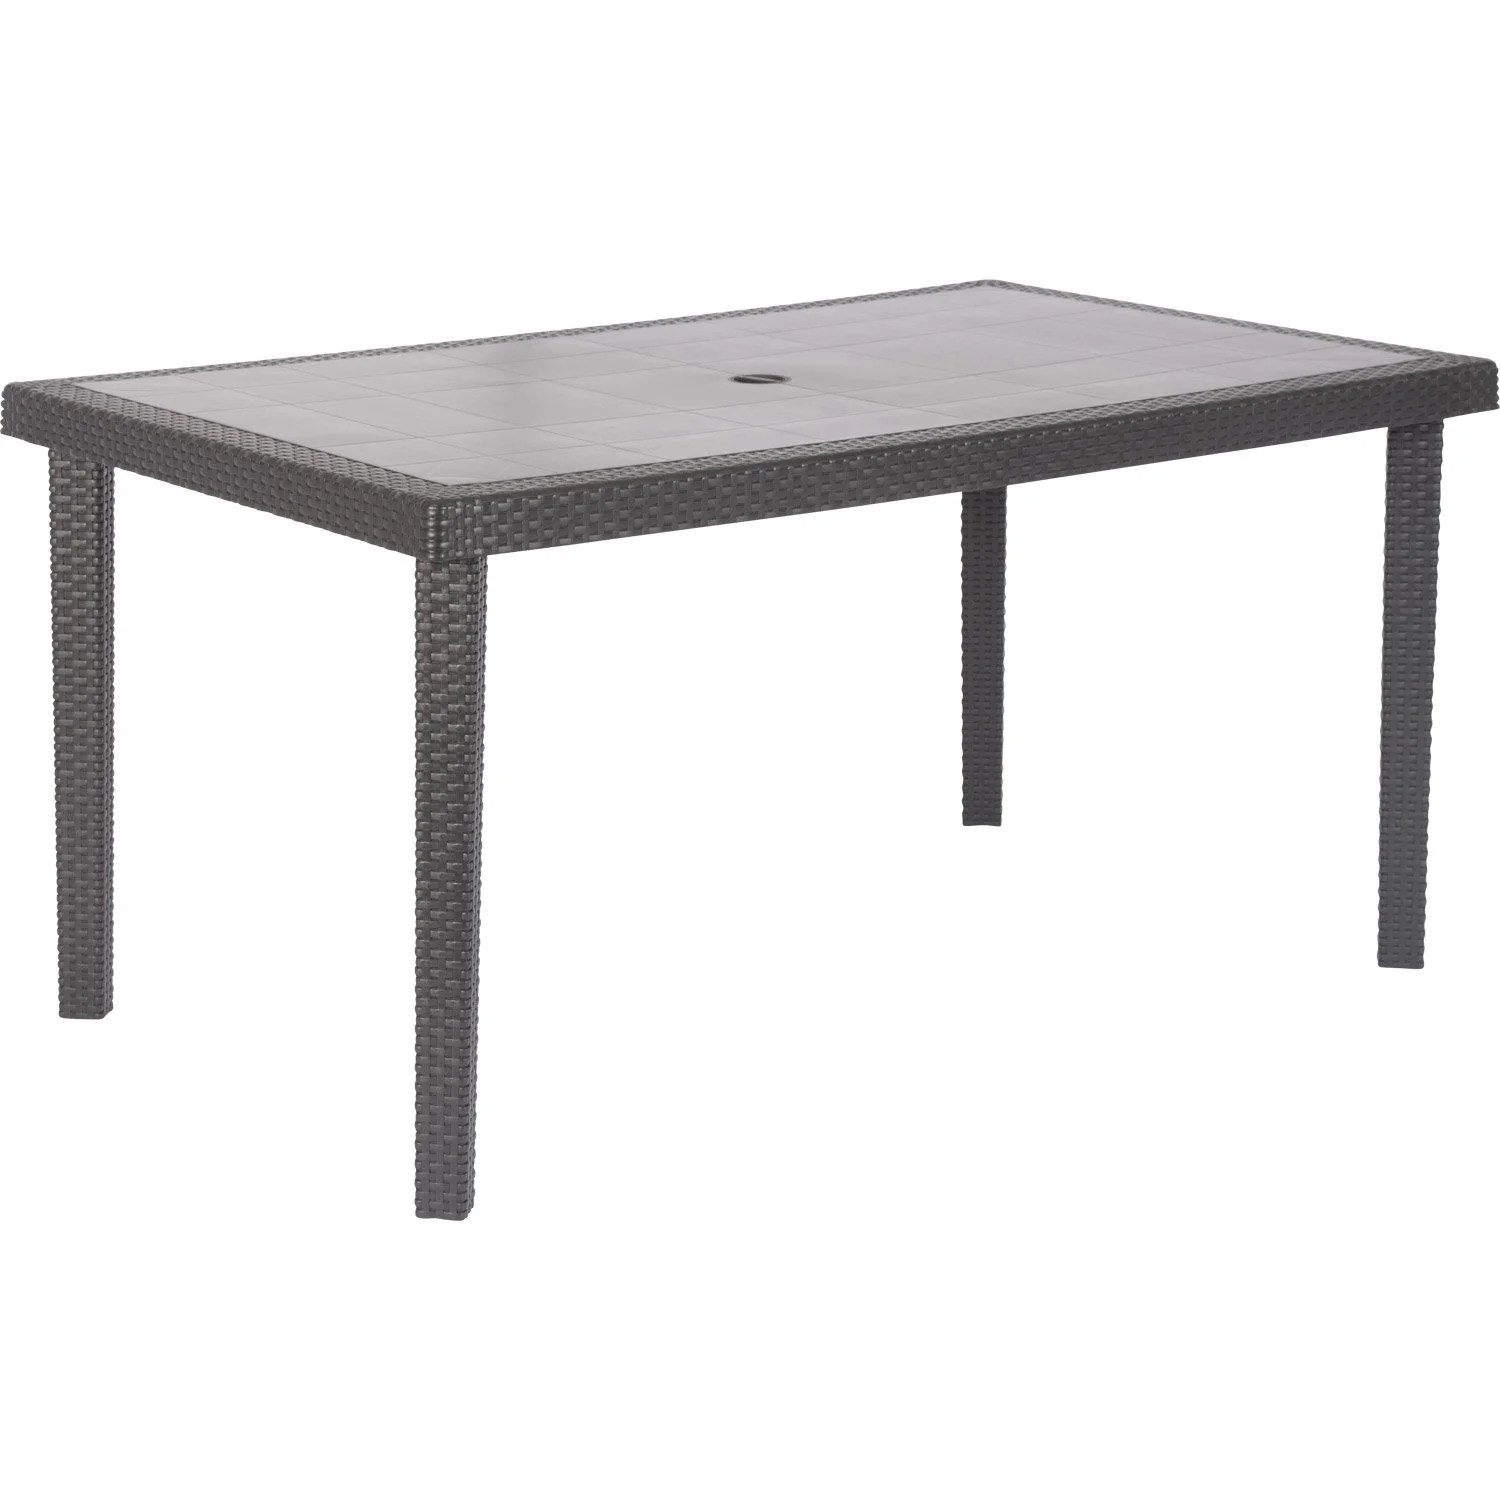 Table de jardin Bohme rectangulaire anthracite 6 personnes  Leroy Merlin